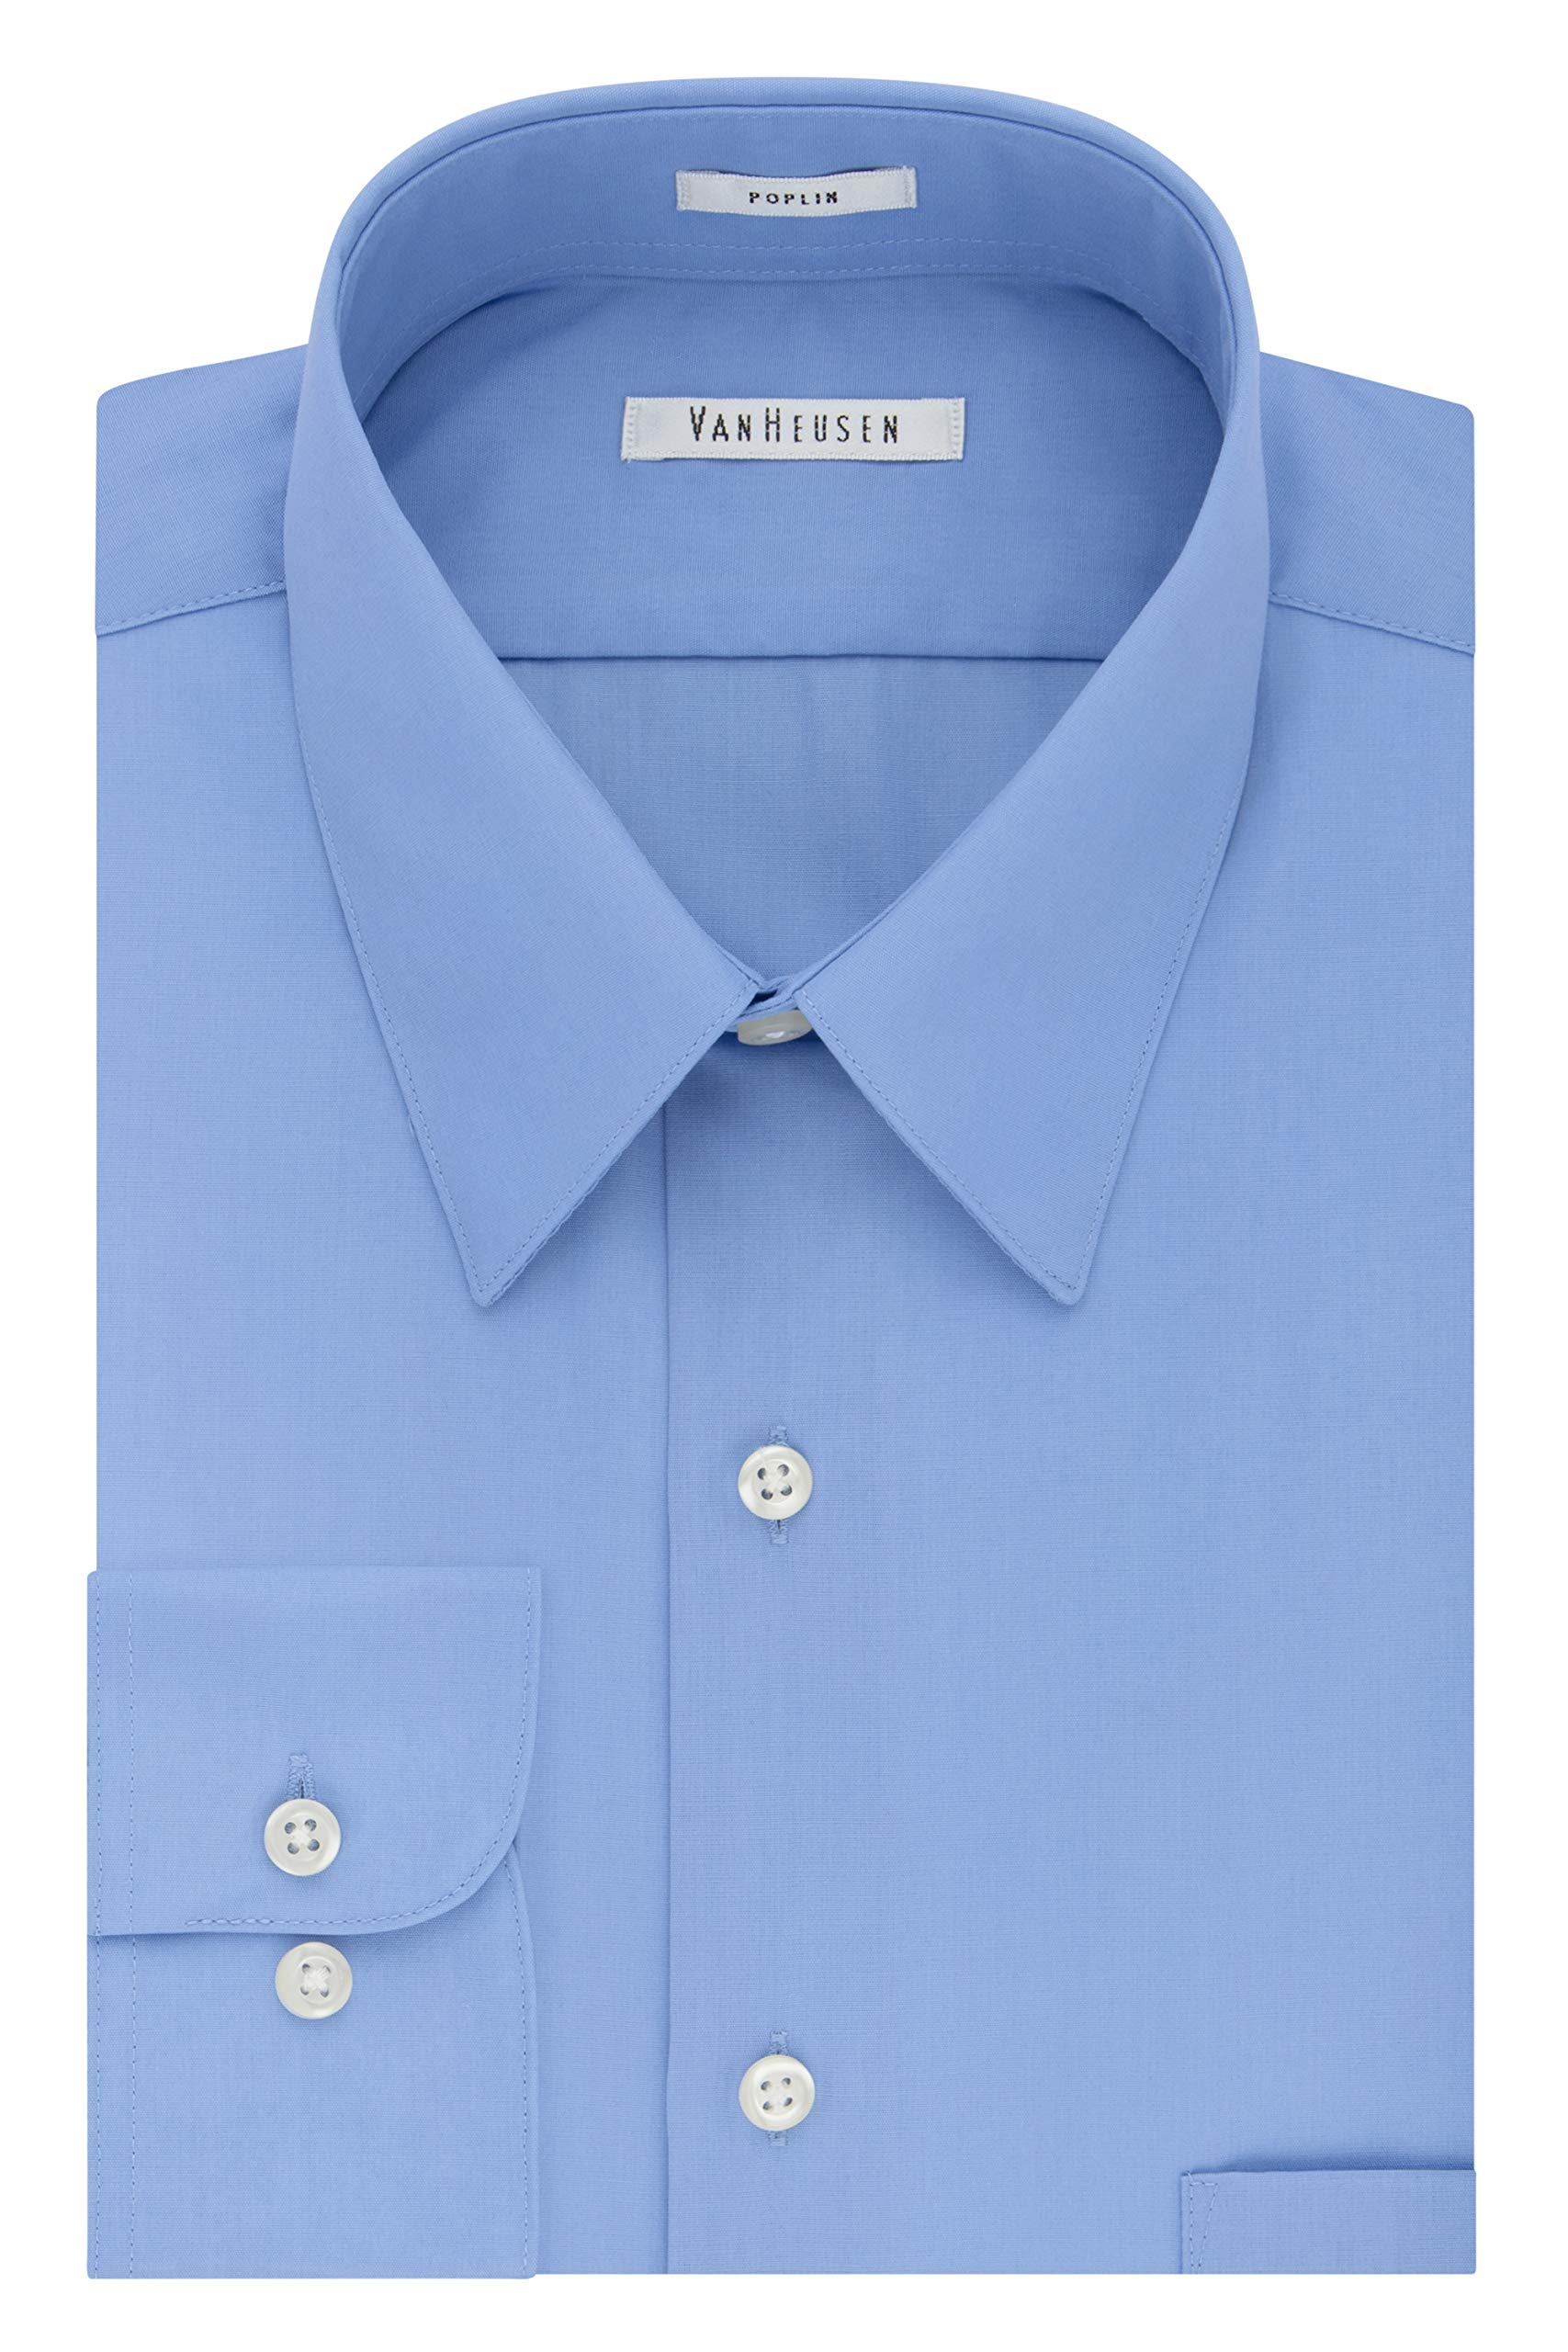 256b3bceb Van Heusen Men's Poplin Regular Fit Solid Point Collar Dress Shirt product  image